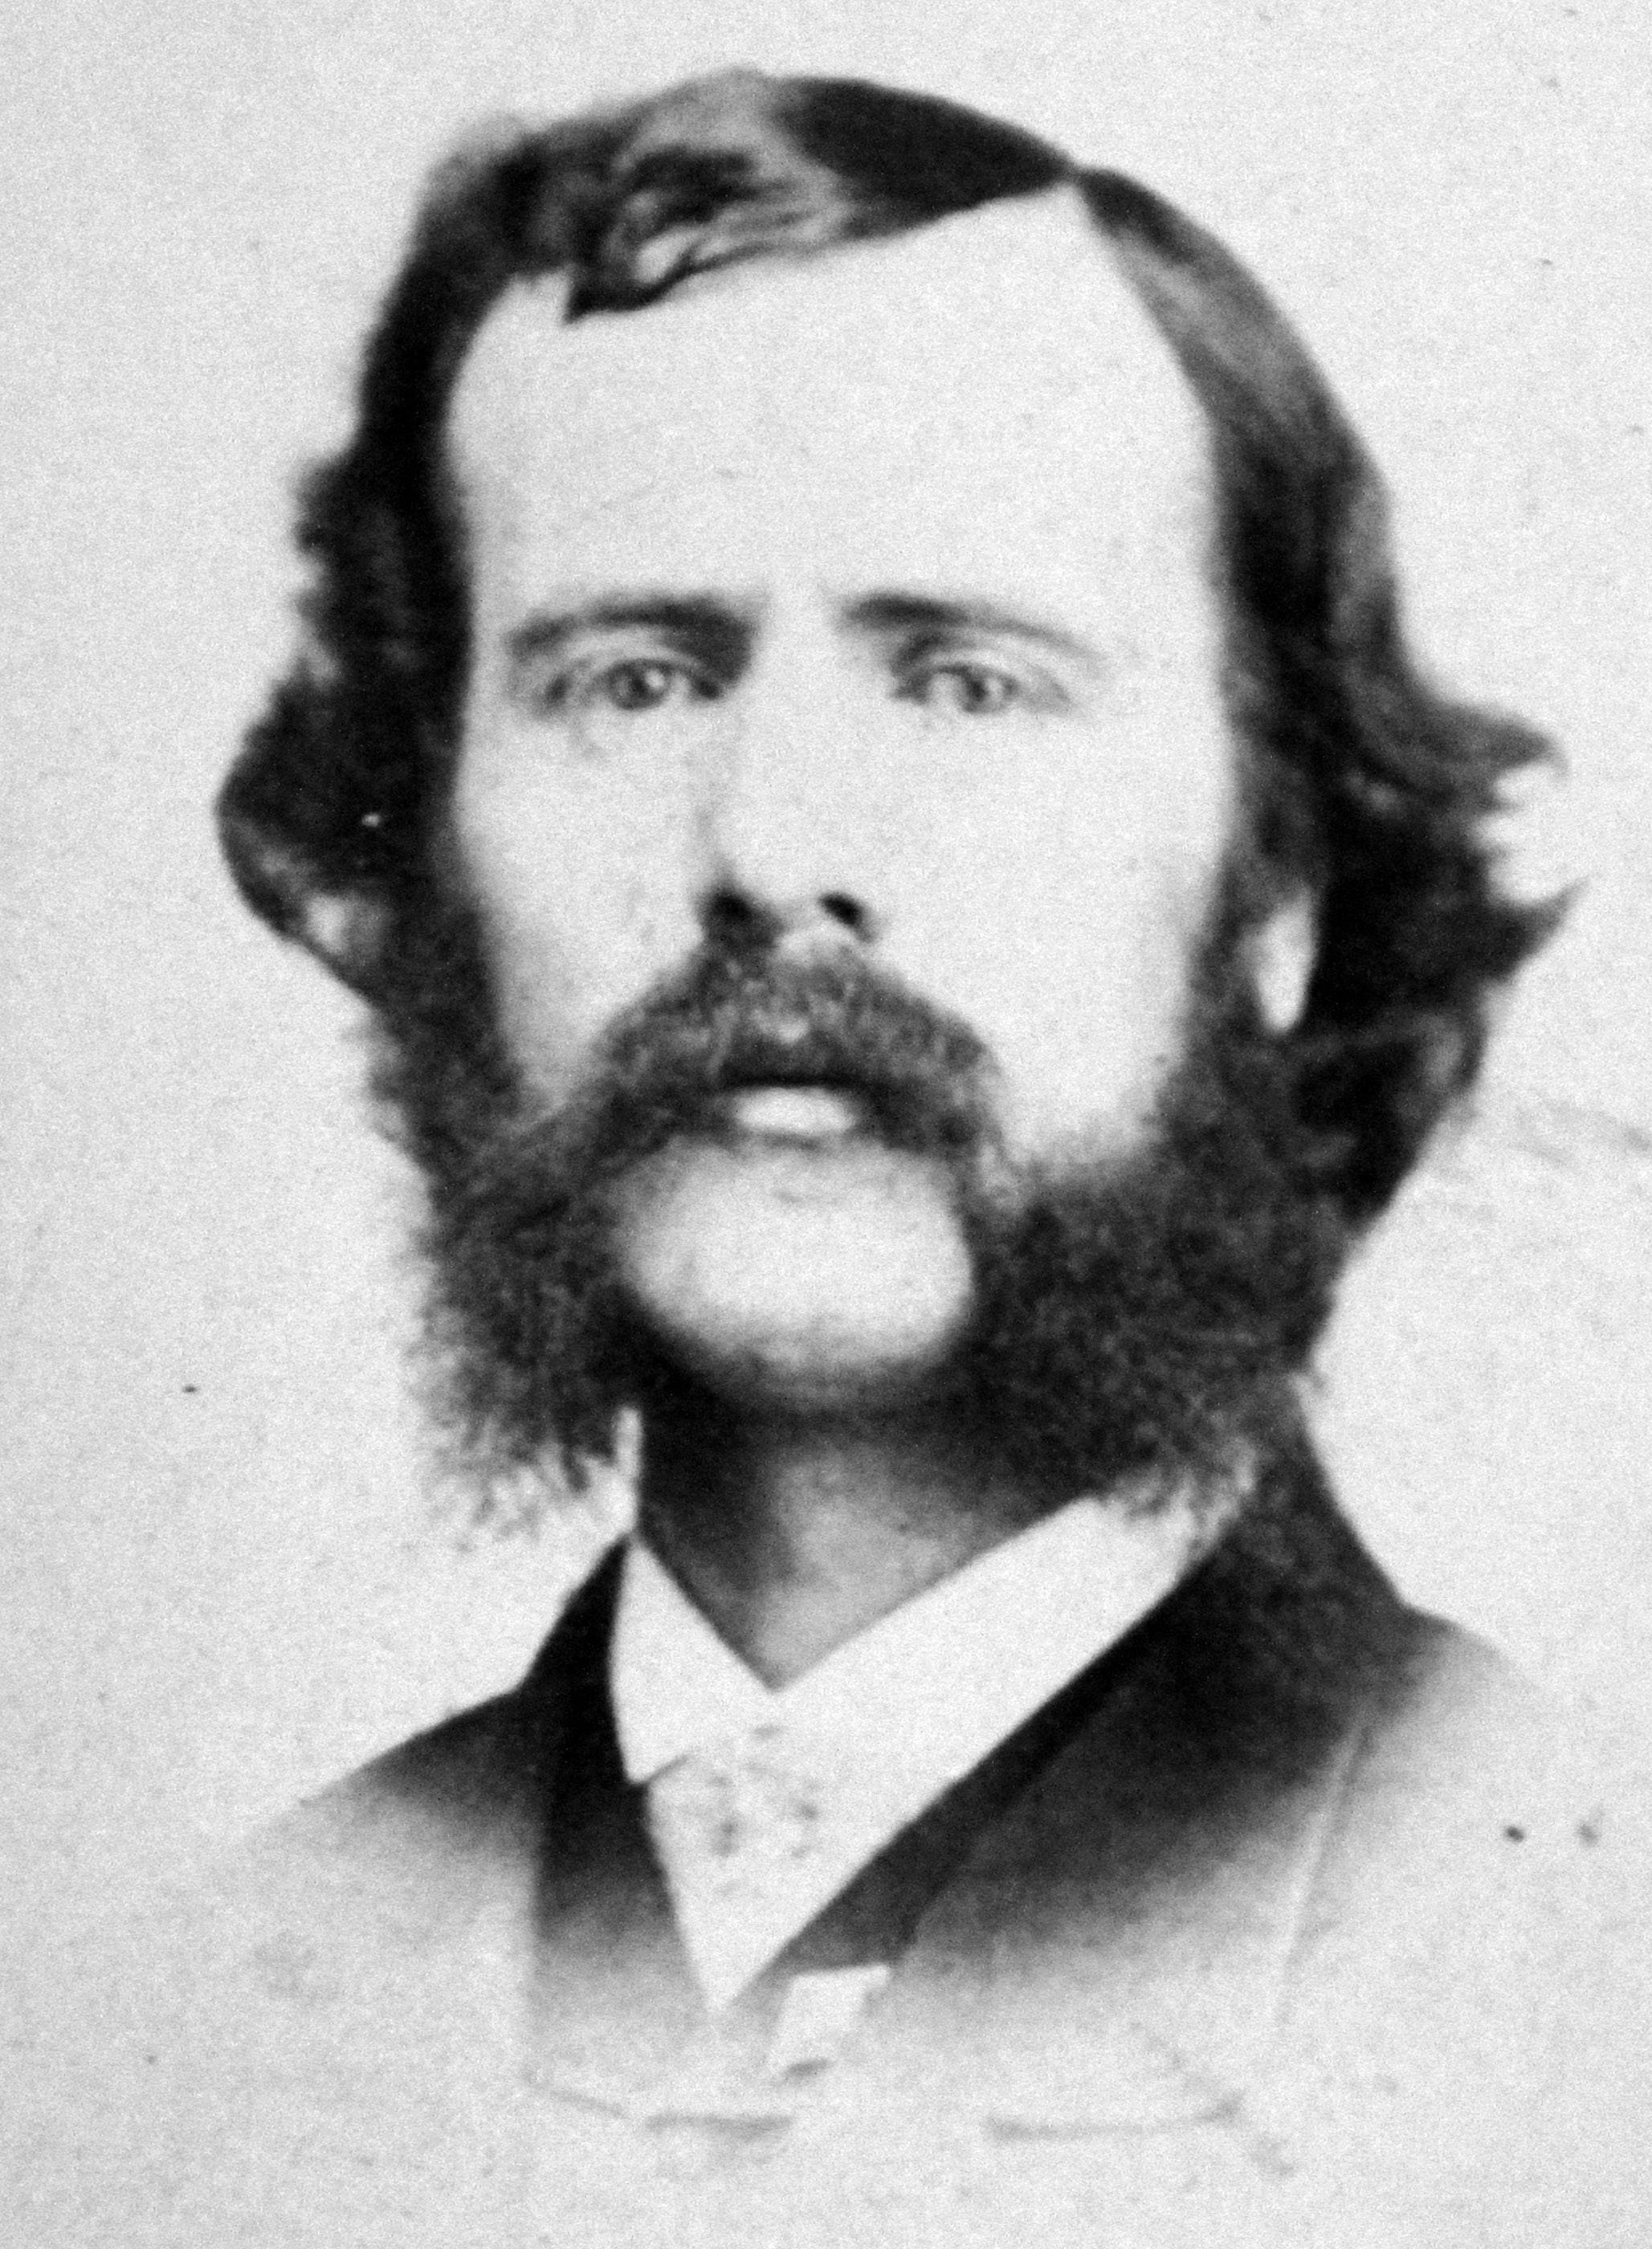 James John Howard Gregory as a college student in the late 1840s.